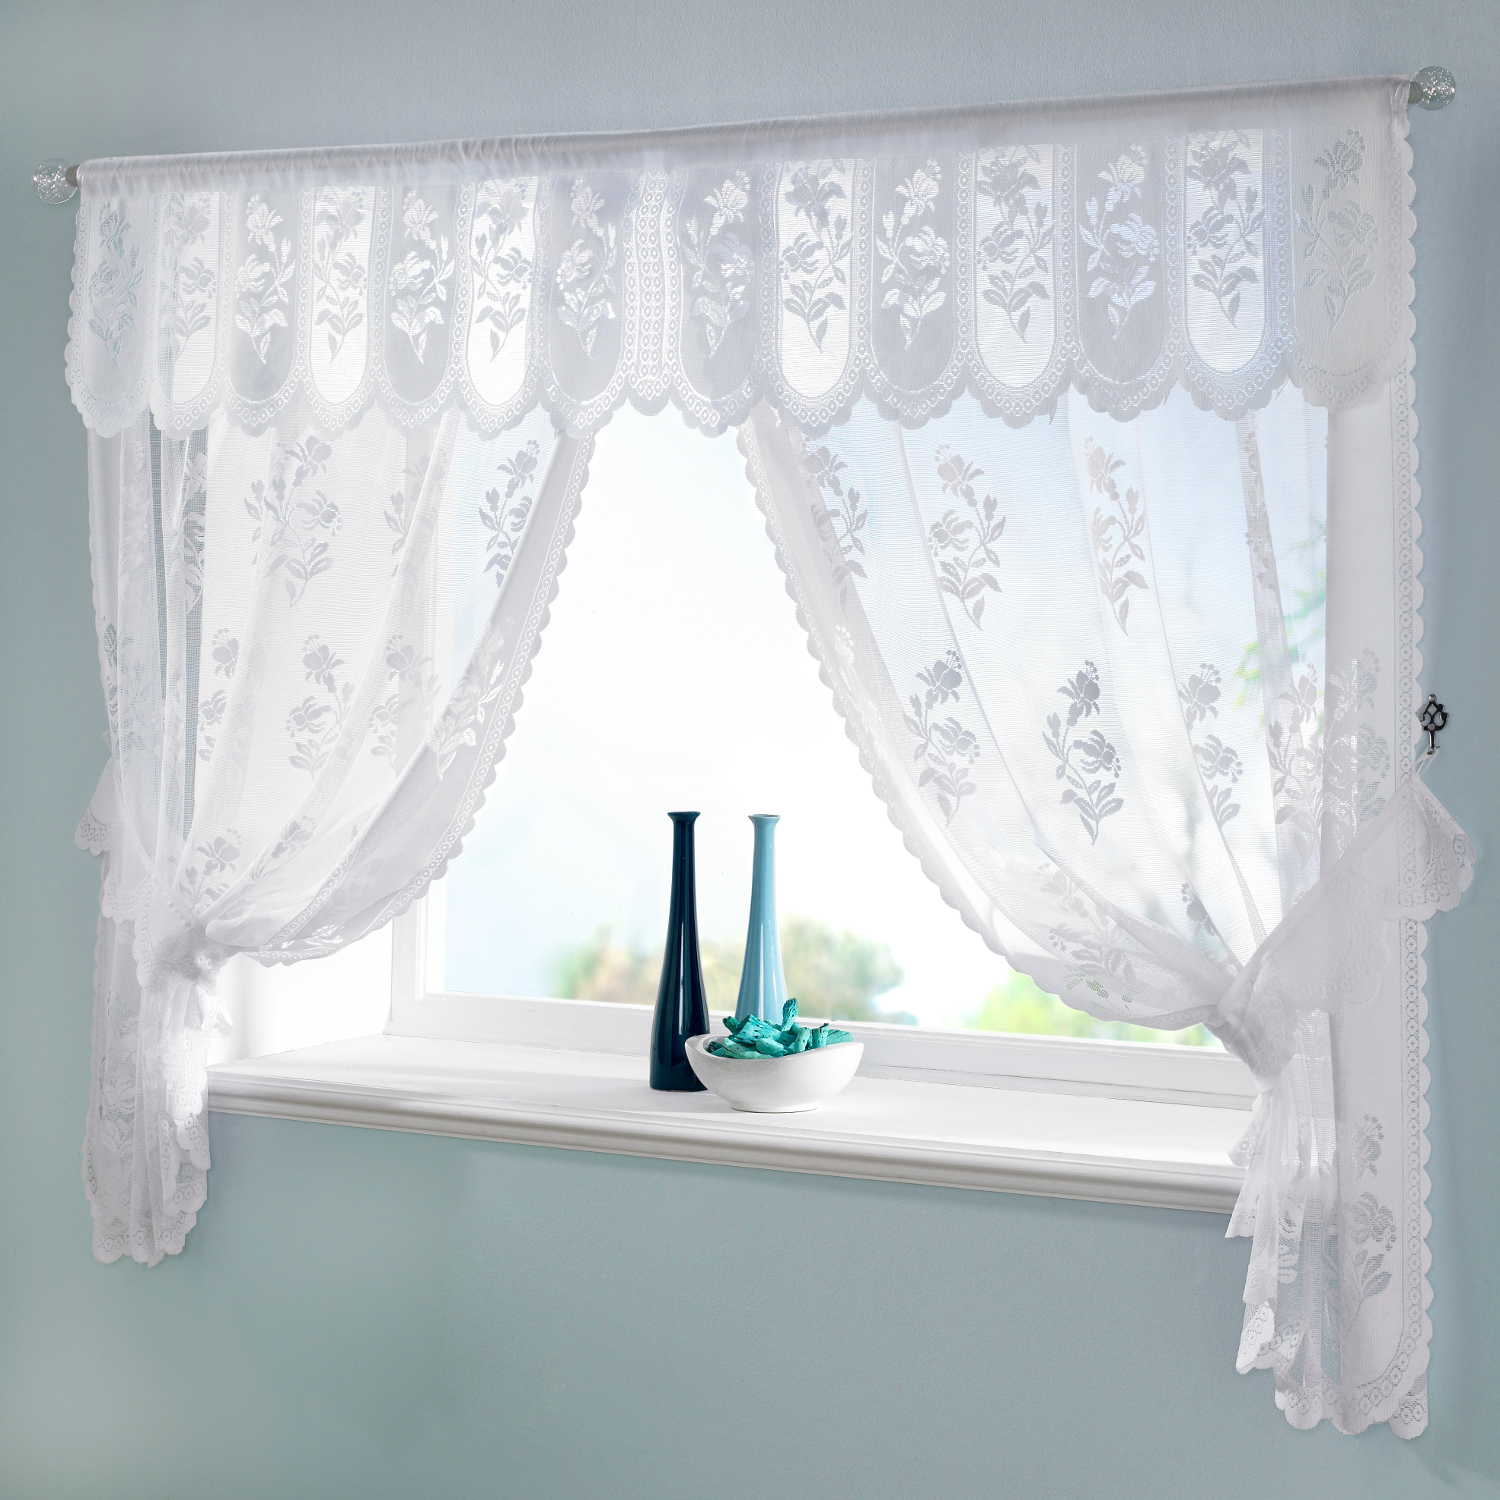 Curtains With Pelmet Attached